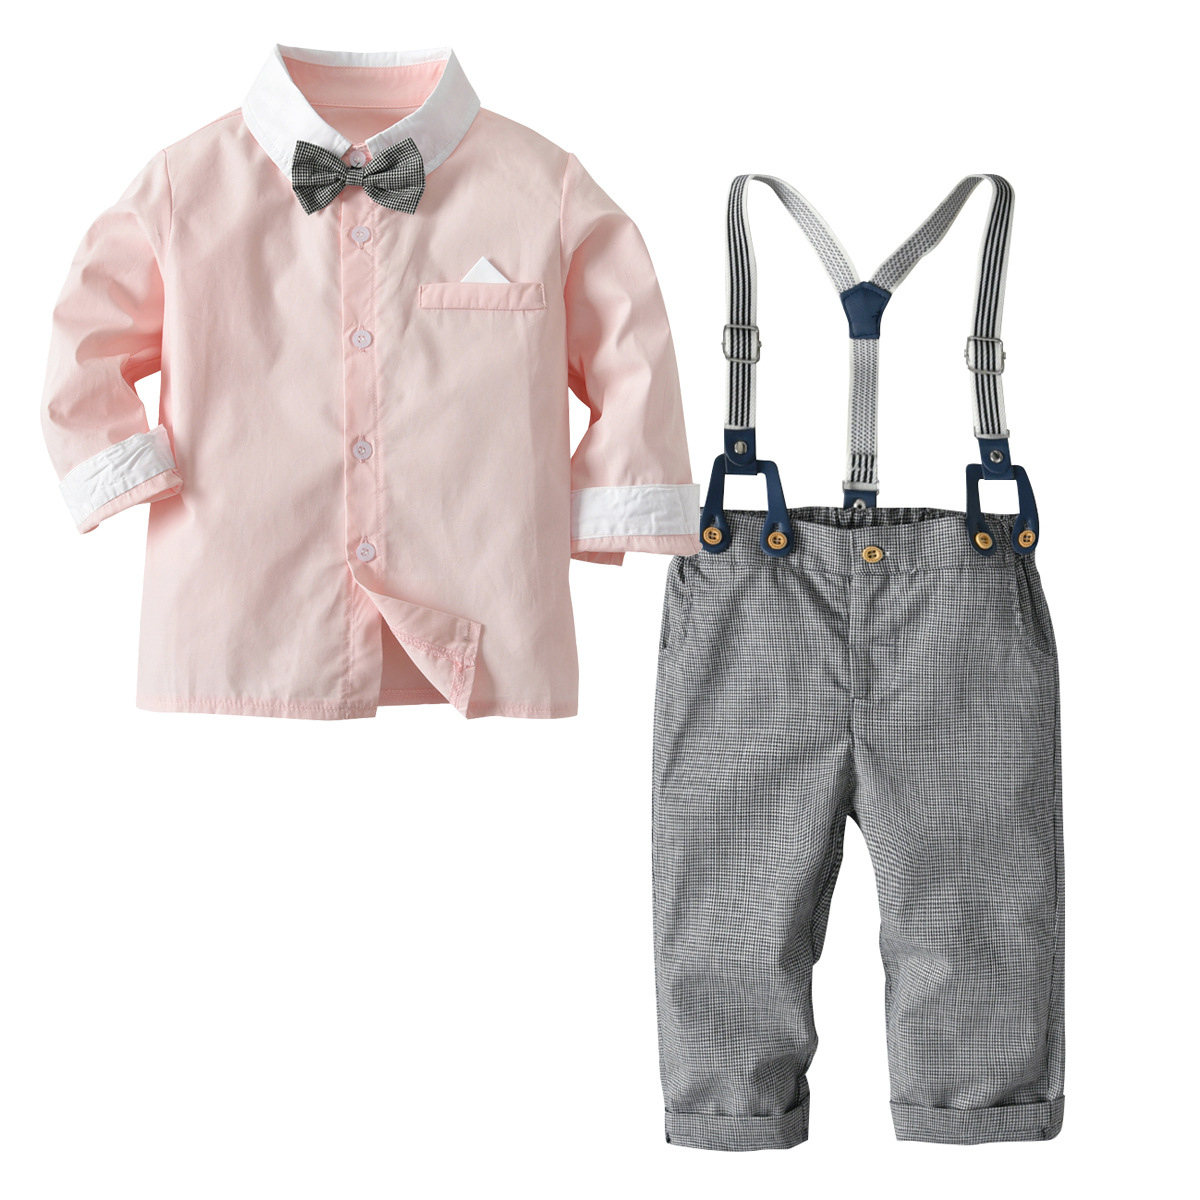 2018 New Autumn Kids Suits Blazers Baby Boys Single Breasted Blouse Overalls Tie Suit Boys Formal Wedding Wear Children Clothing single breasted knot blouse